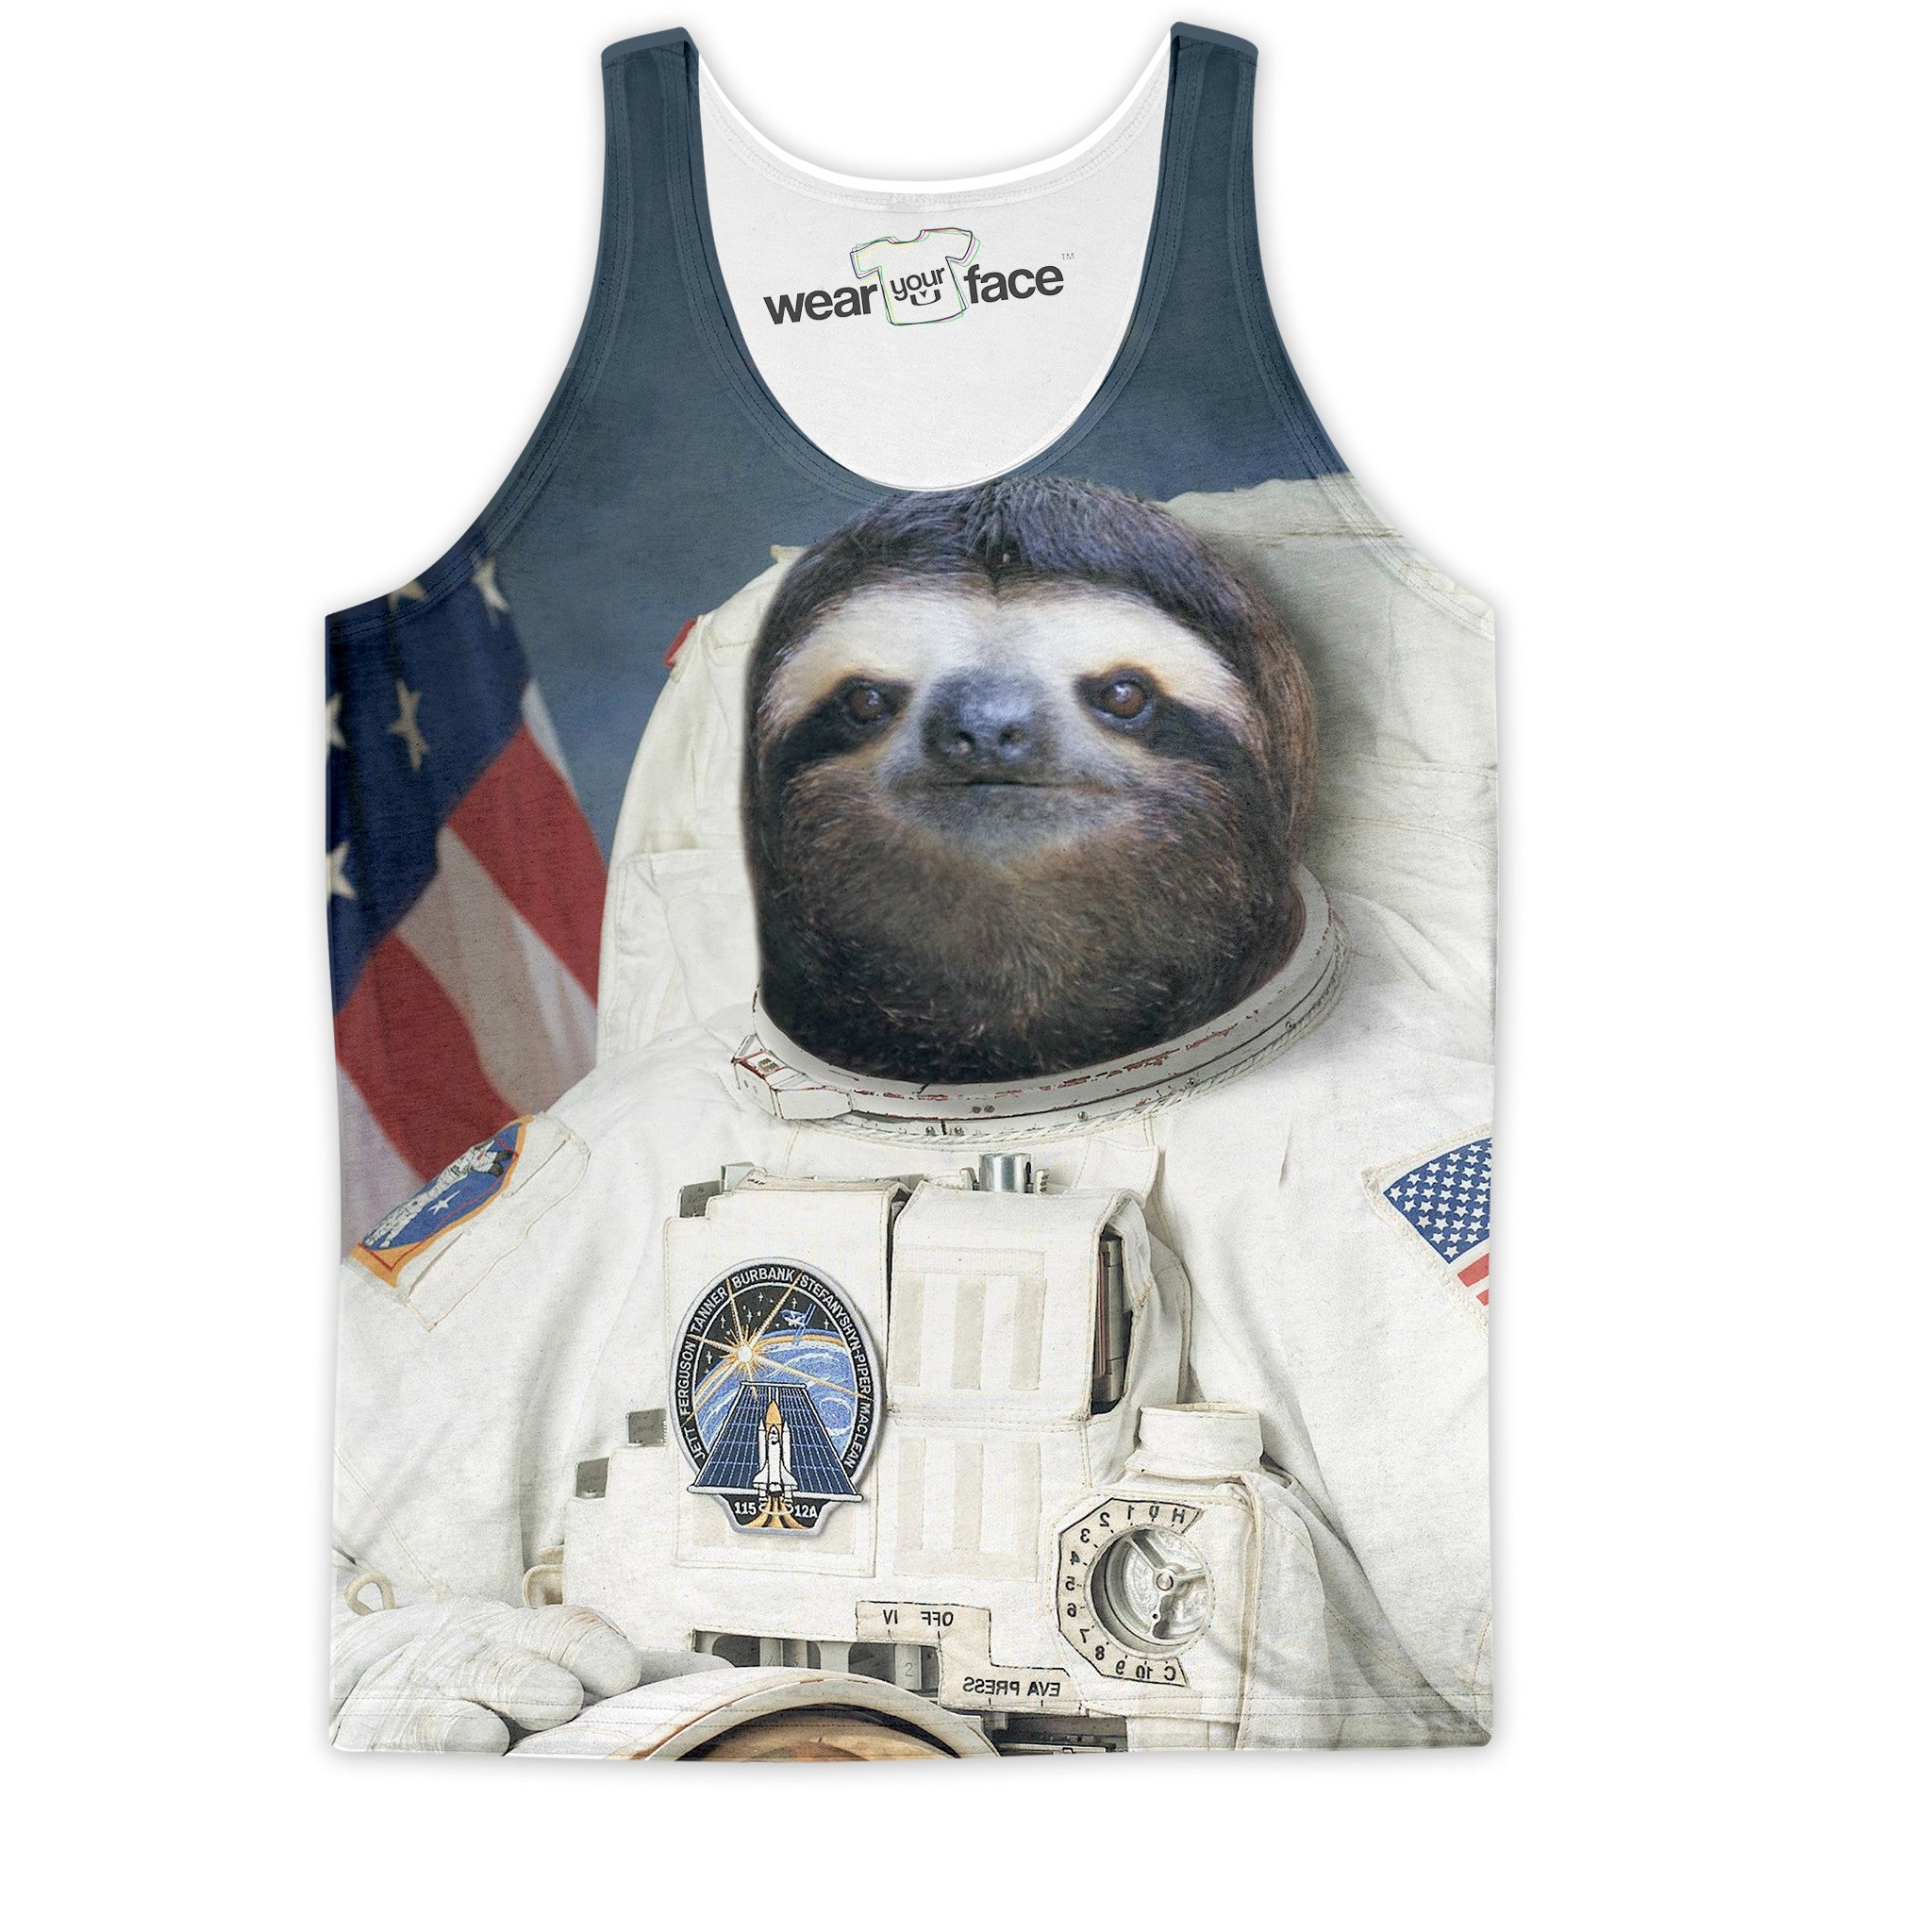 The Sloth Astronaut Mission Tank